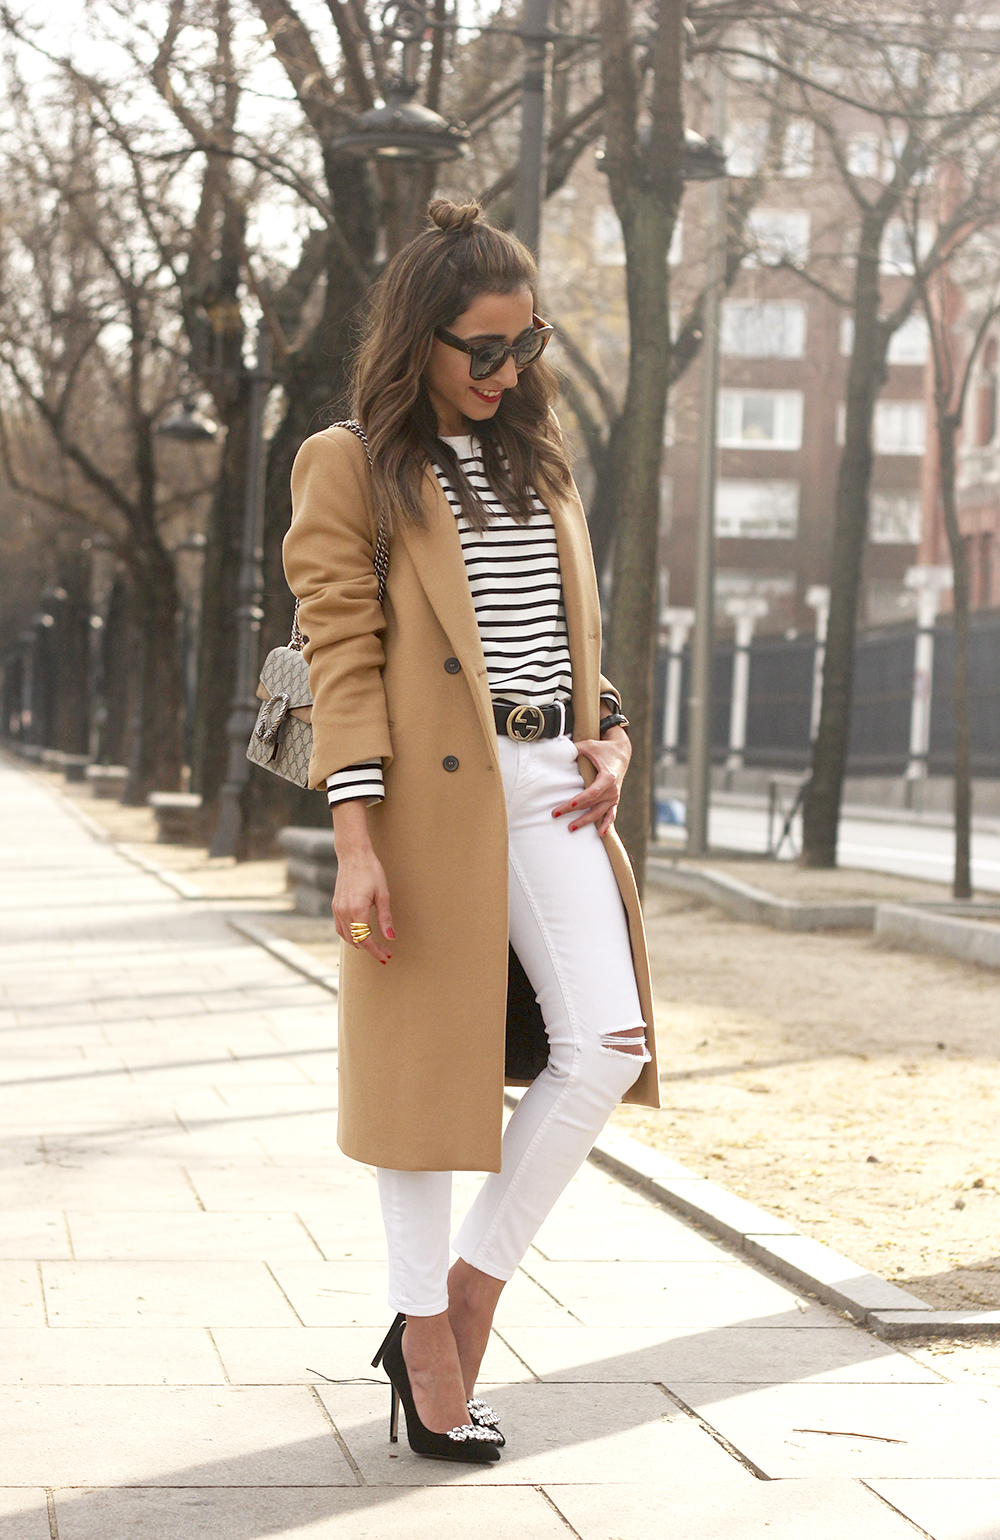 camel coat strieps white ripped jeans black heels uterqüe belt gucci céline sunnies outfit fashion style12